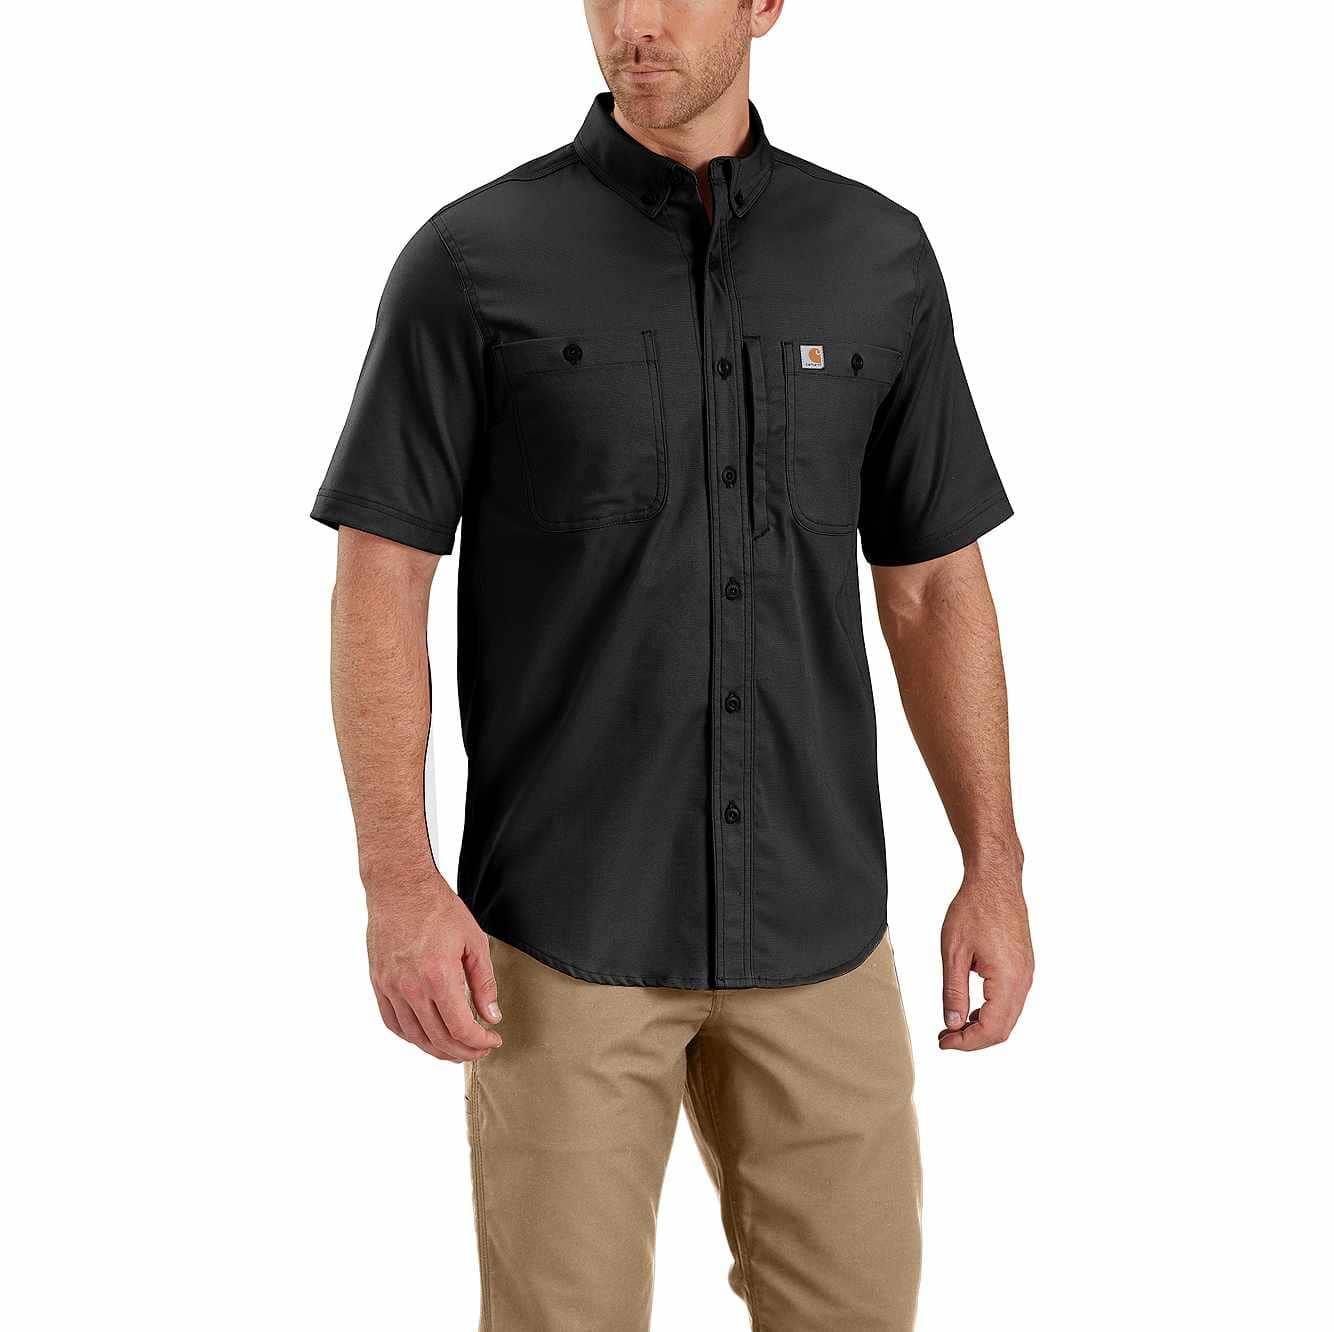 Picture of Rugged Professional™ Series Men's Short-Sleeve Shirt in Black